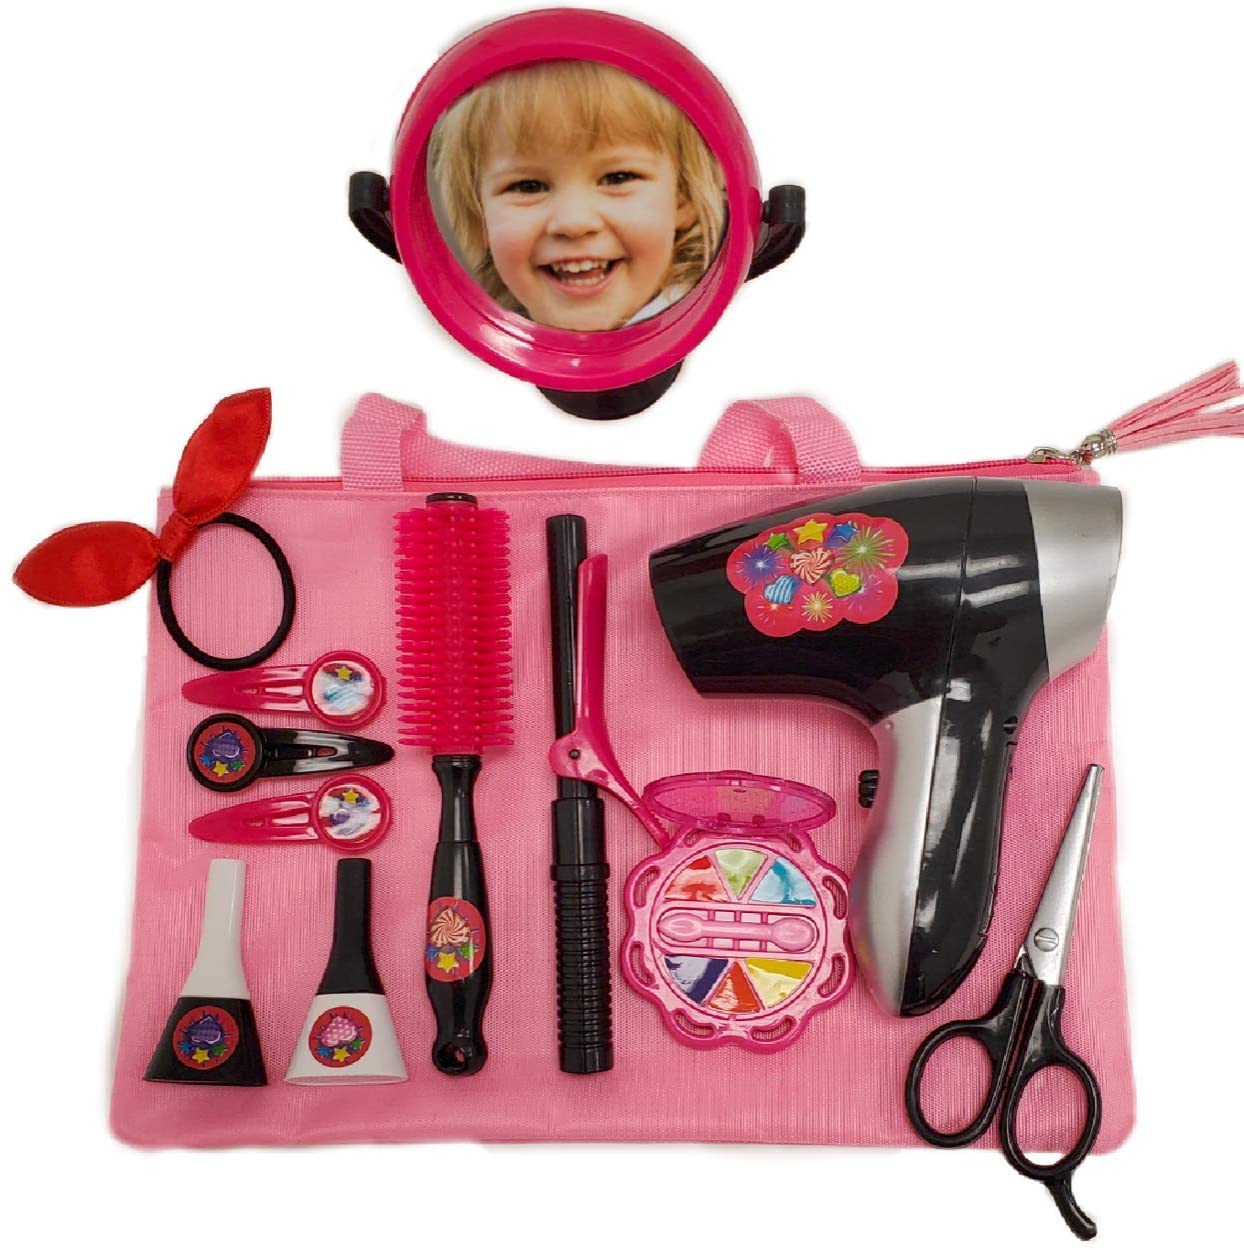 Pretend Hair Styling Set for Girls - Play Hair Salon Toys for Girls - Complete Toy Hair Styling Set - Toddler Beauty Salon Play Set with Pretend Makeup